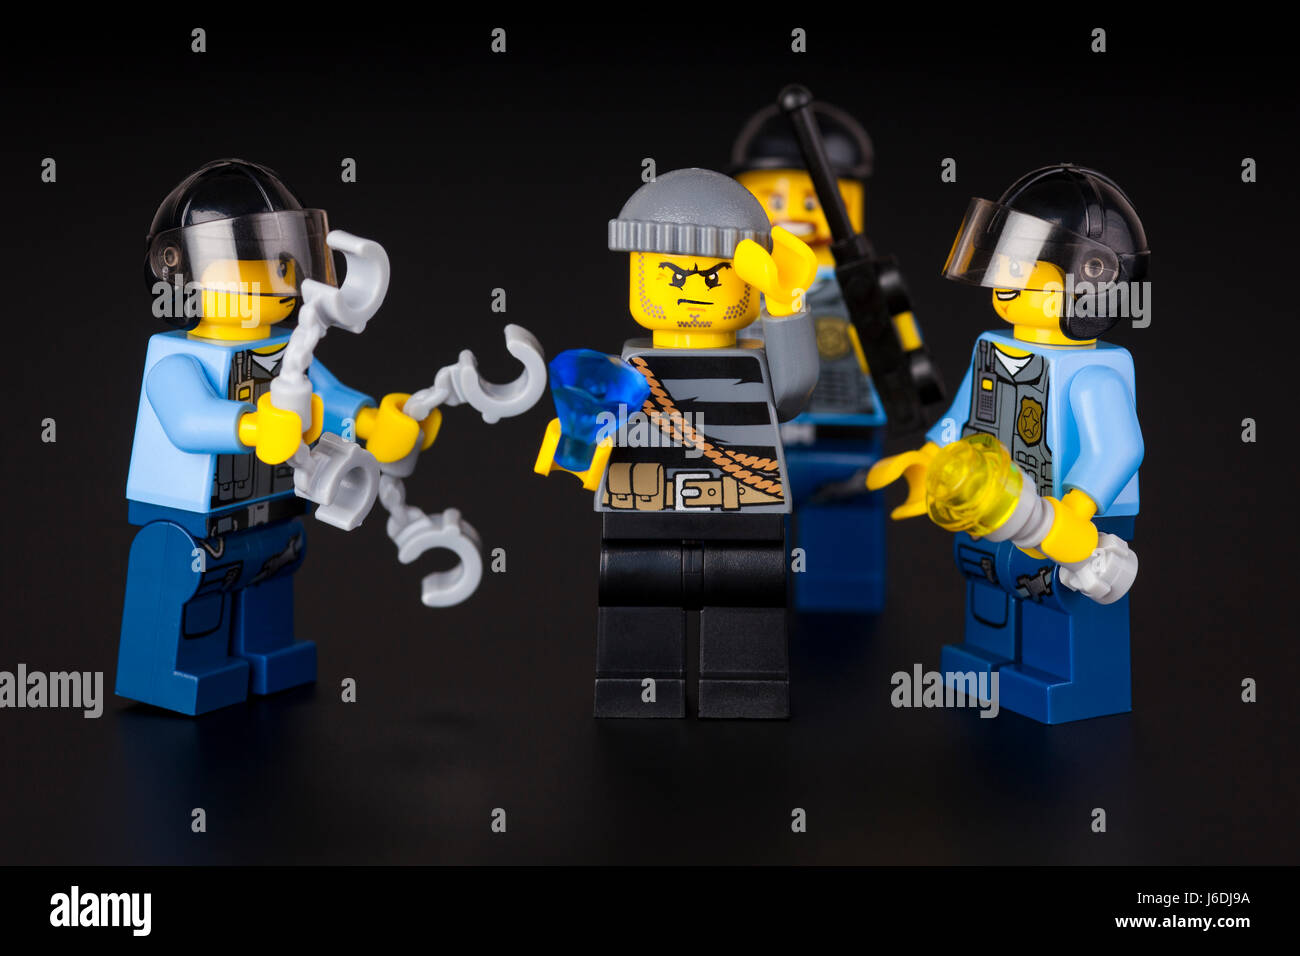 Tambov  Russian Federation   August 27  2014 Lego night arrest     Tambov  Russian Federation   August 27  2014 Lego night arrest  Three  police officers and robber with diamond on black background  Studio shot